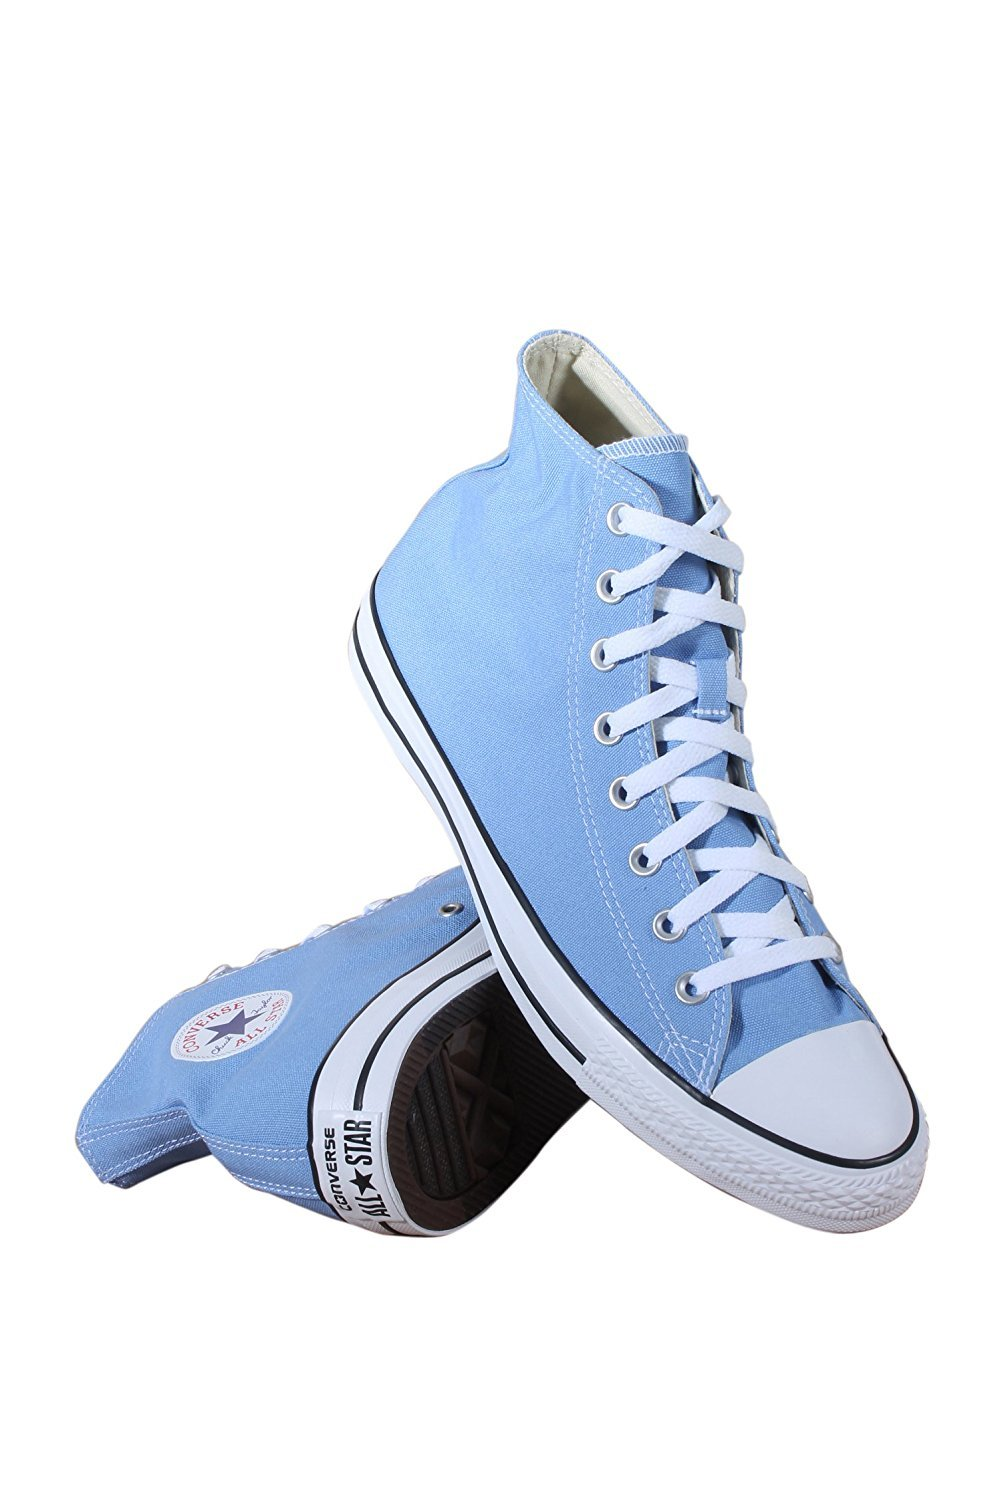 Converse Unisex Chuck Taylor in All-Star High-Top Casual Sneakers in Taylor Classic Style and Color and Durable Canvas Uppers B01MQXV35A 11.5 B(M) US Women / 9.5 D(M) US Men|Pioneer Blue a67ff3